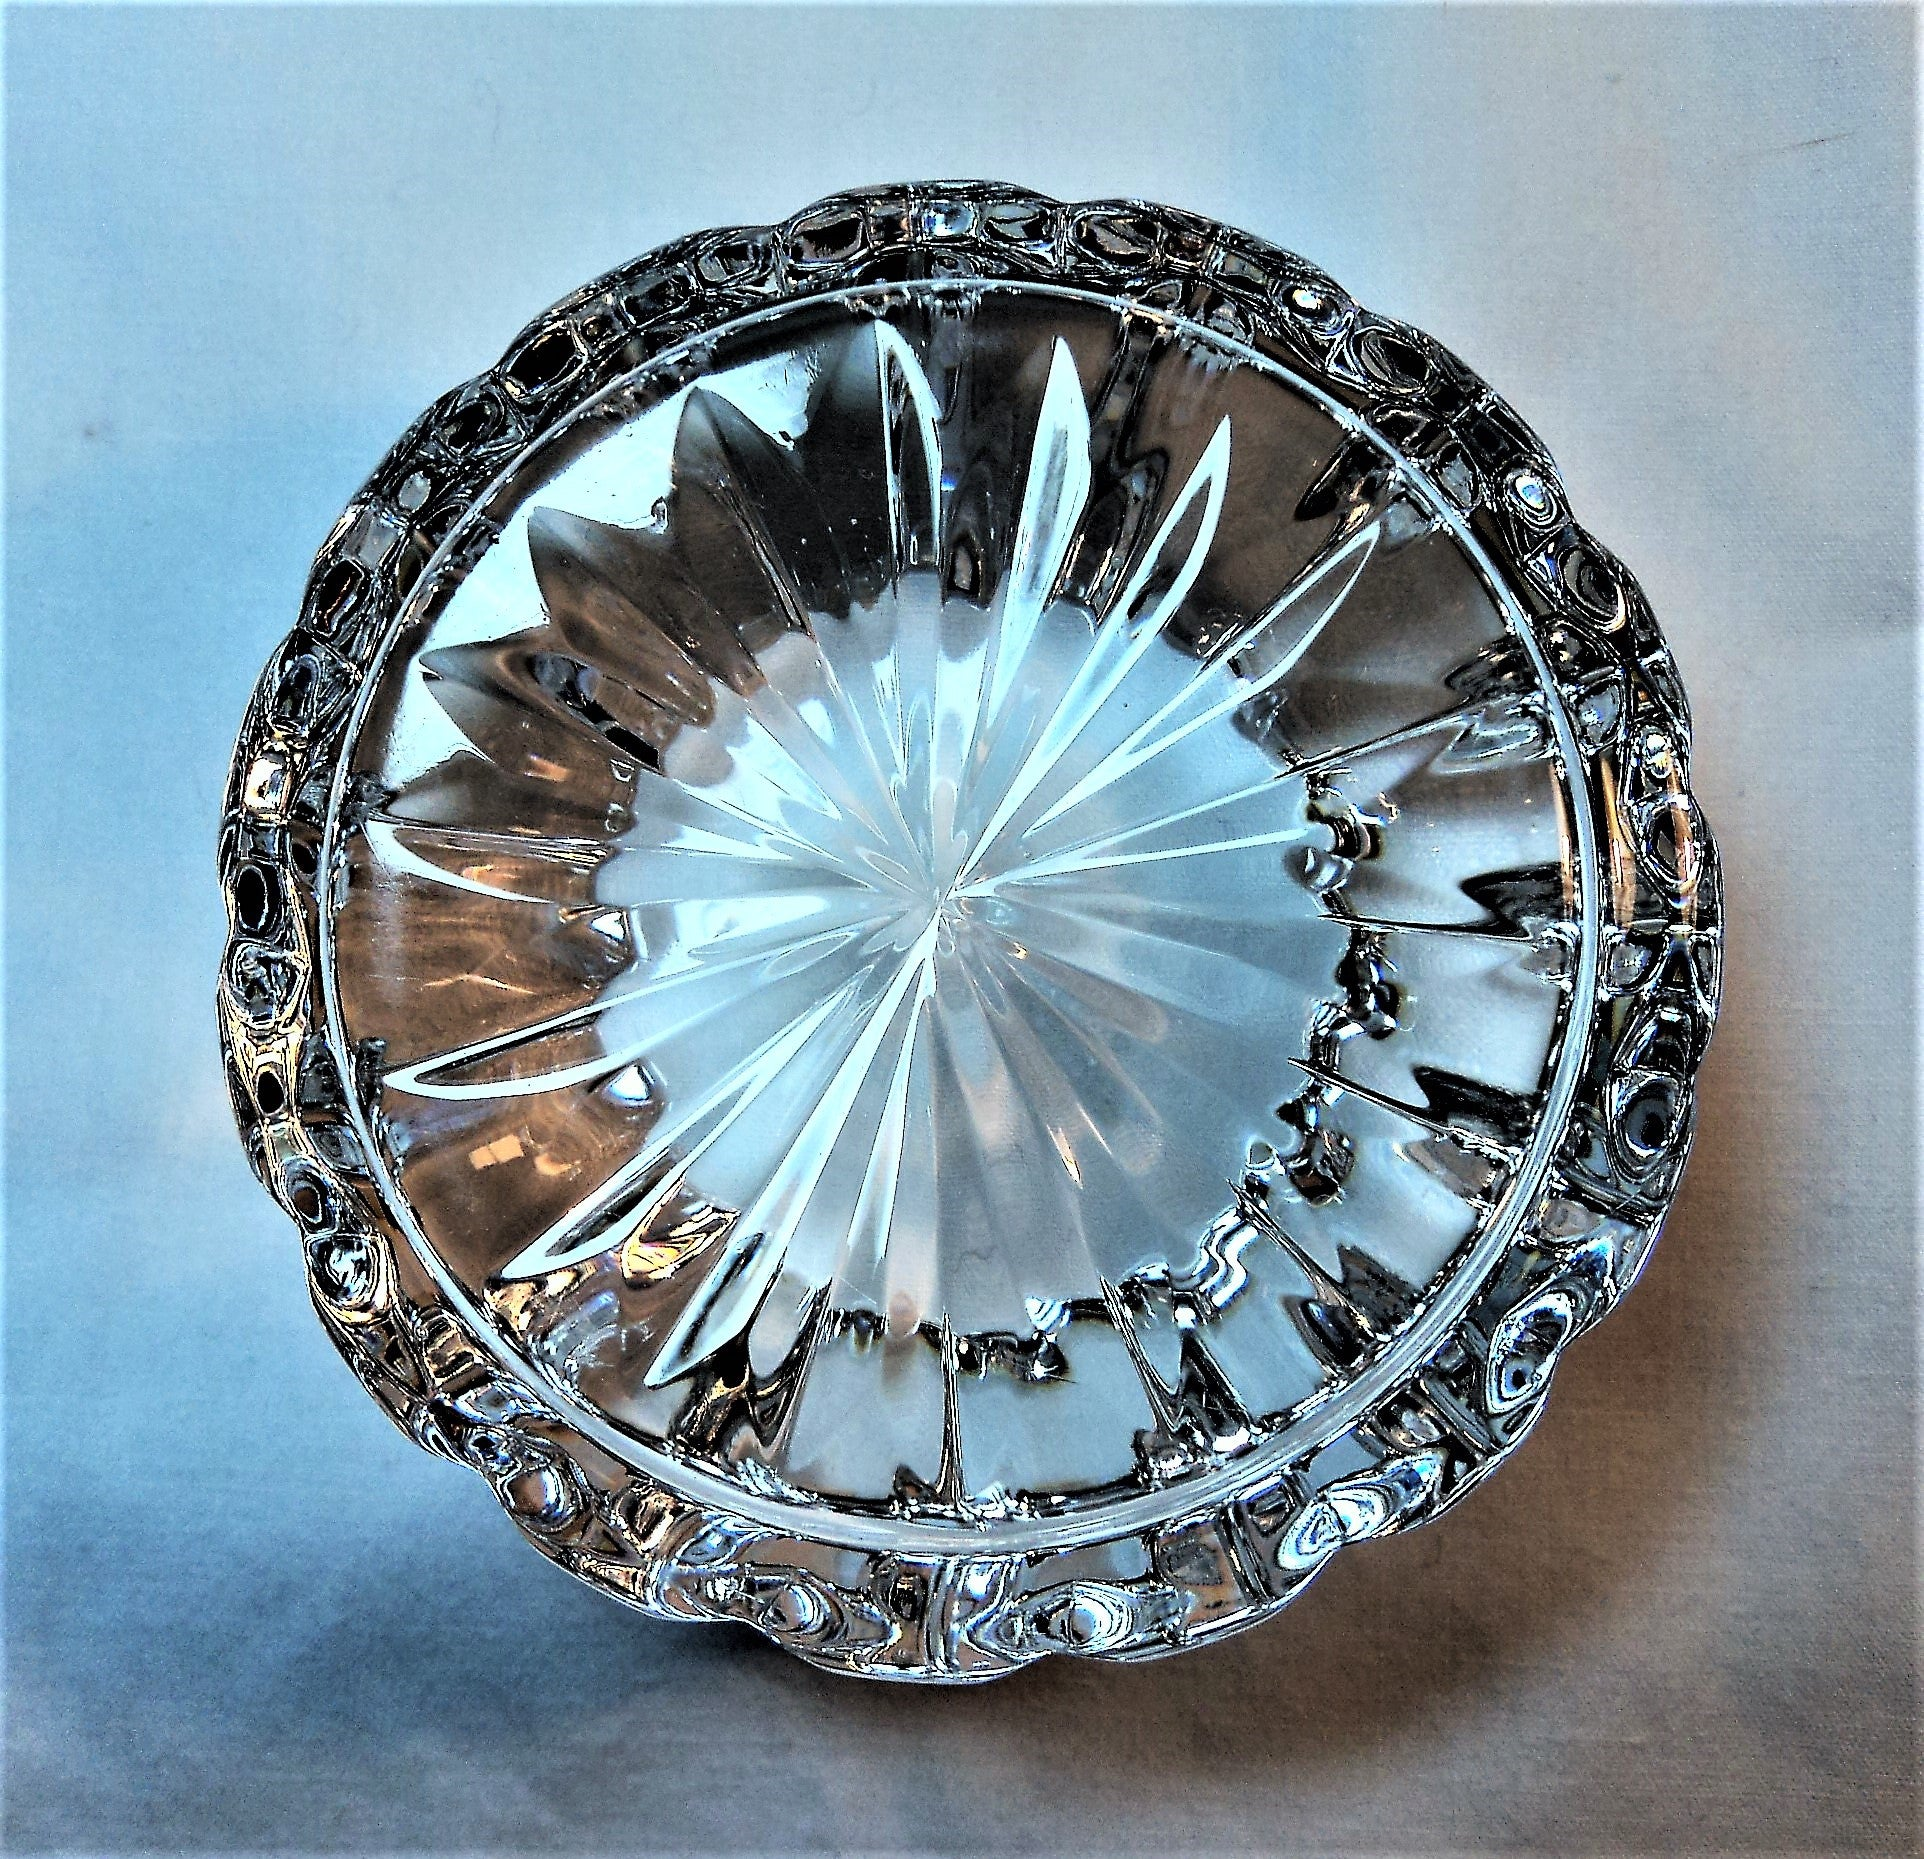 Leaded Crystal Paperweight